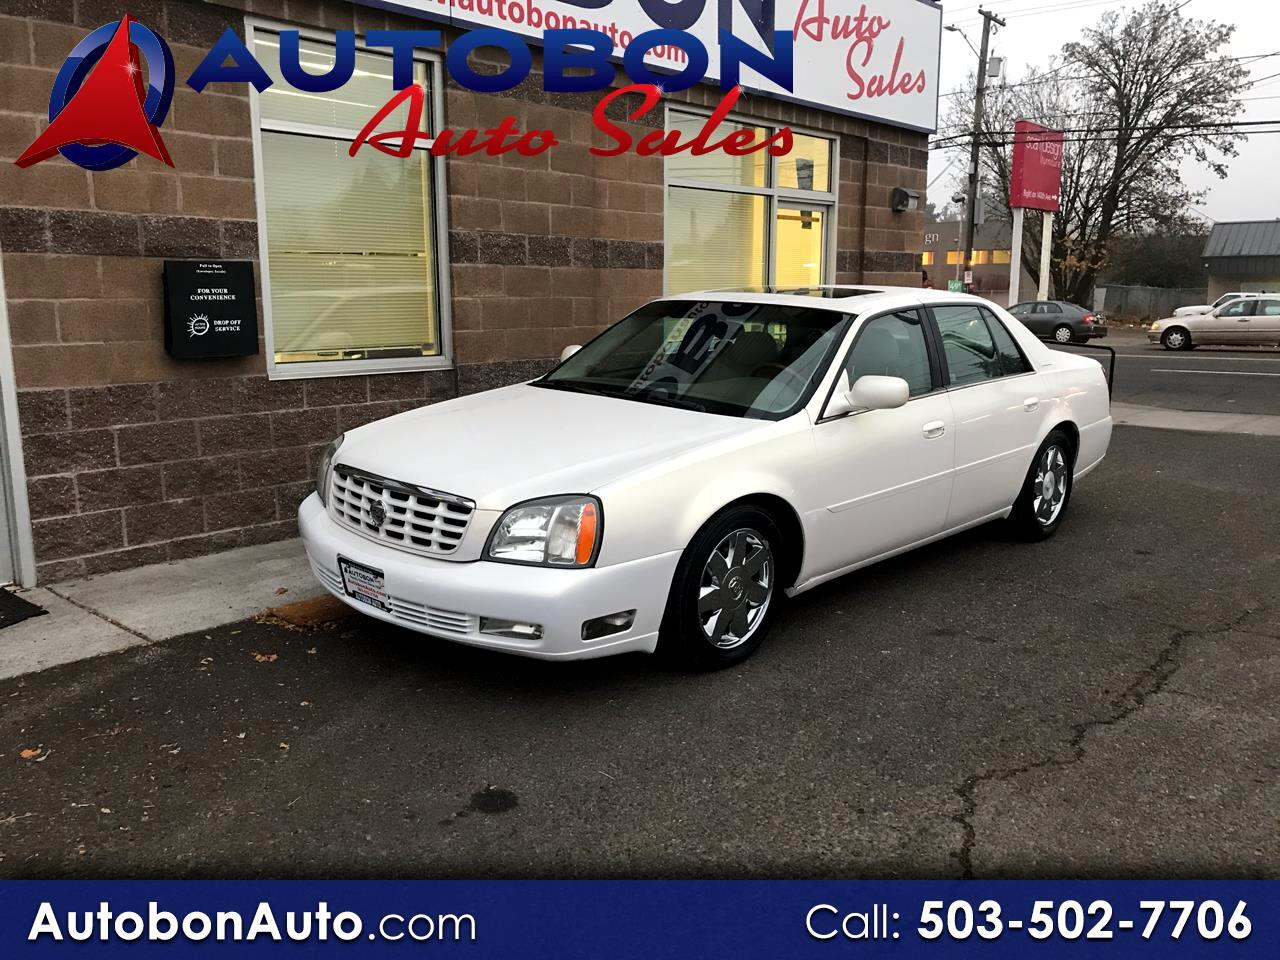 Cadillac DeVille 4dr Sdn DTS 2004